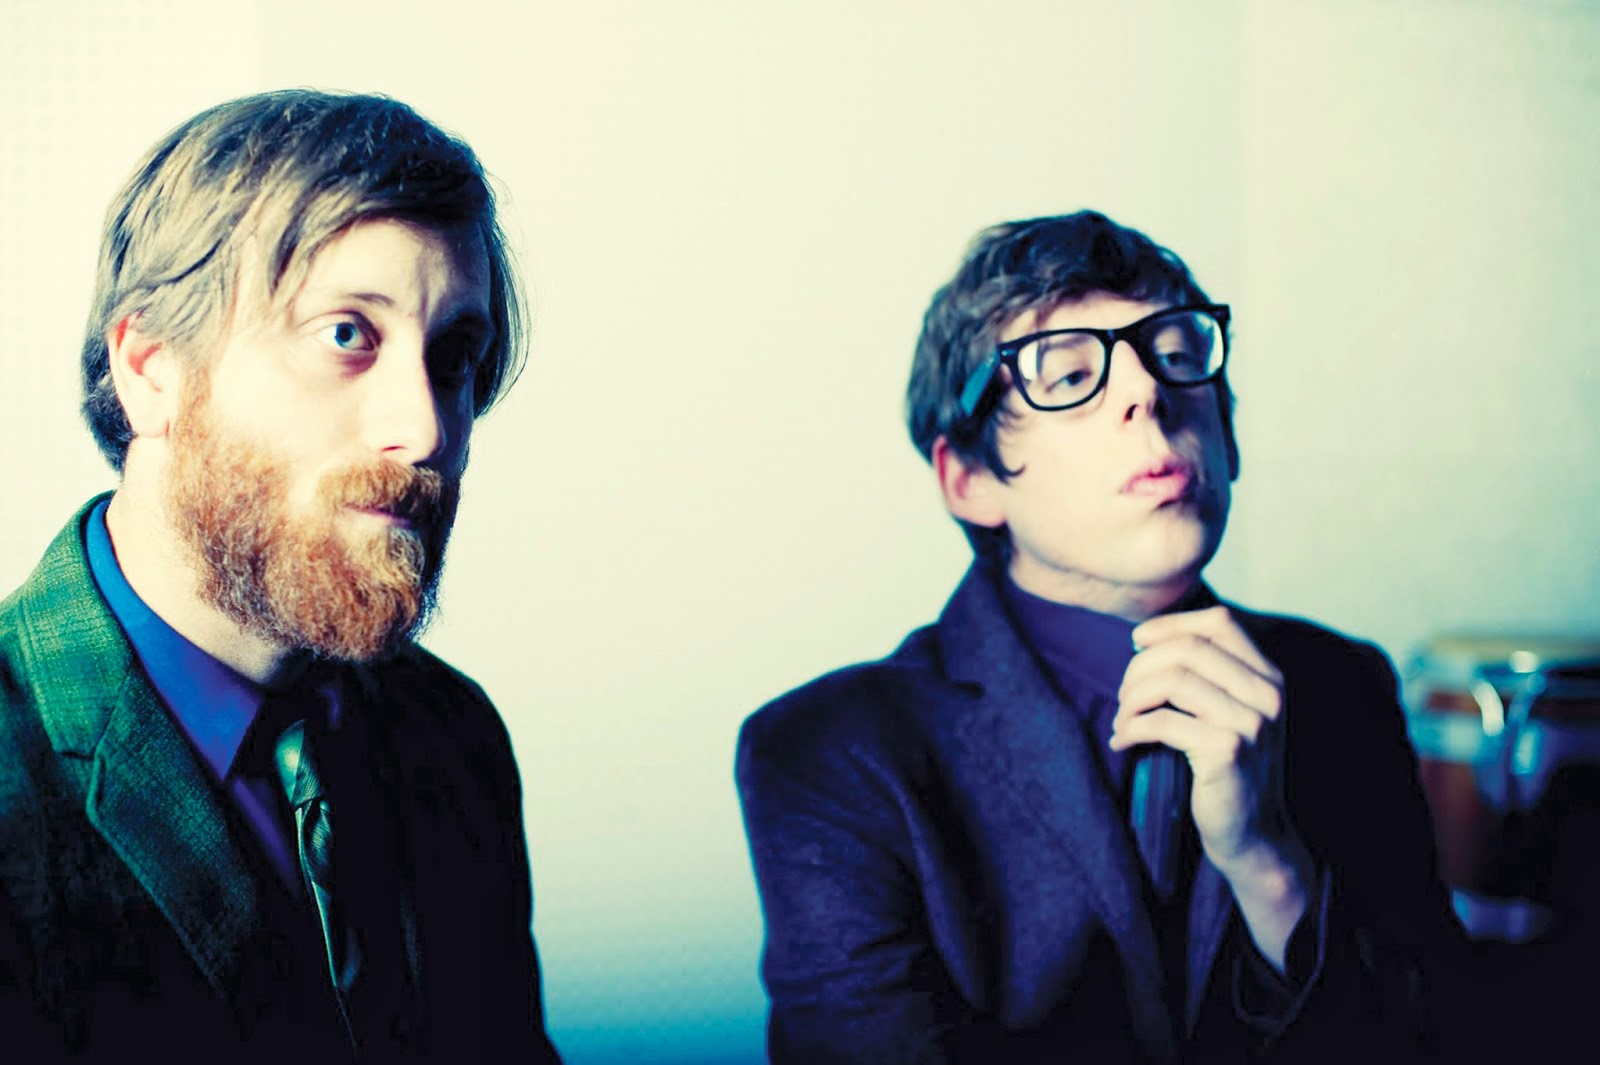 New single from The Black Keys